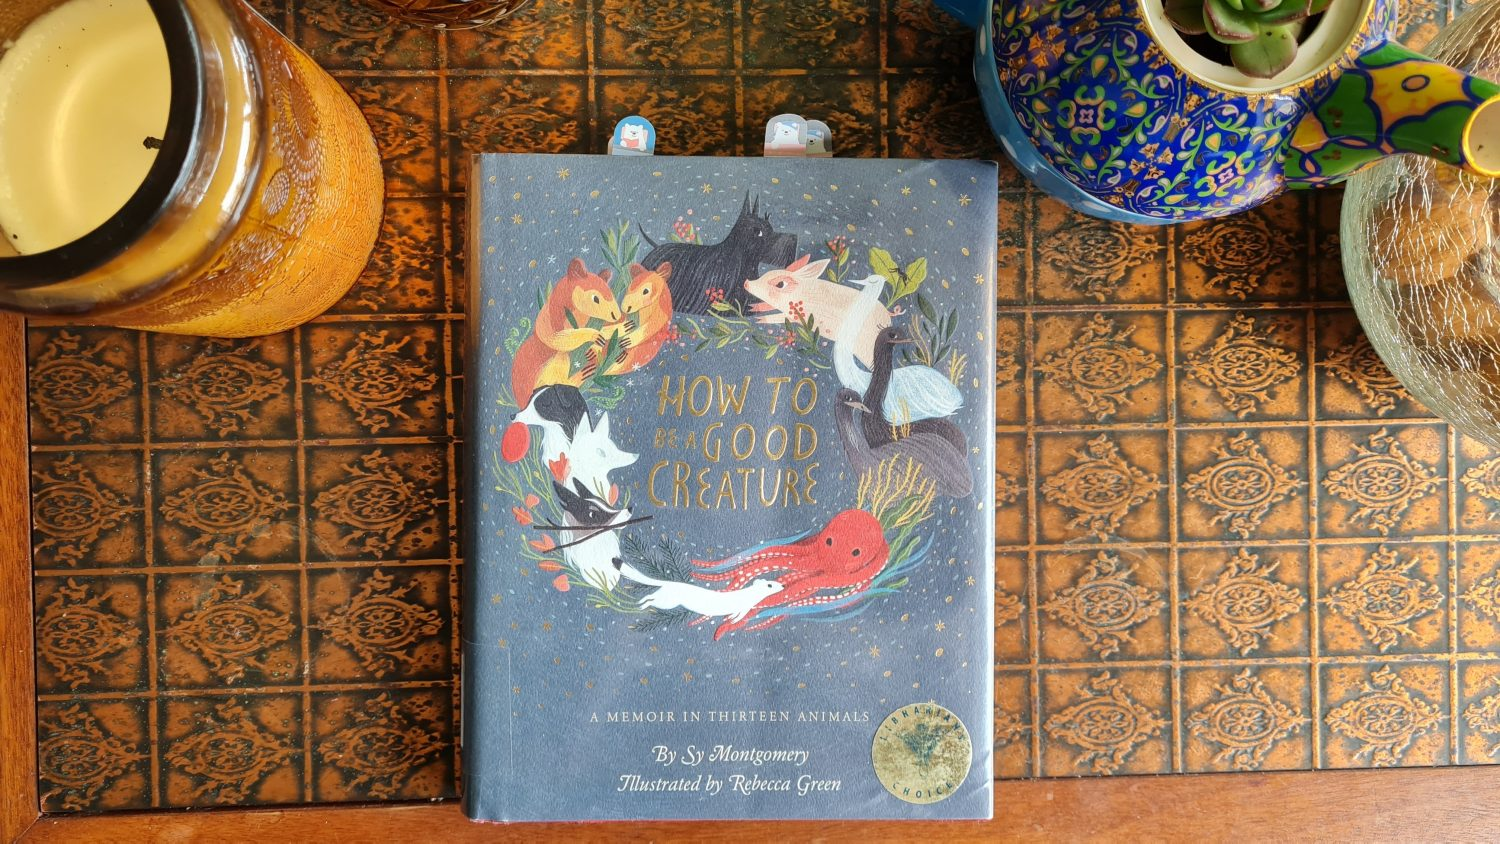 Book Review: How to be A Good Creature: A Memoir in Thirteen Animals by Sy Montgomery